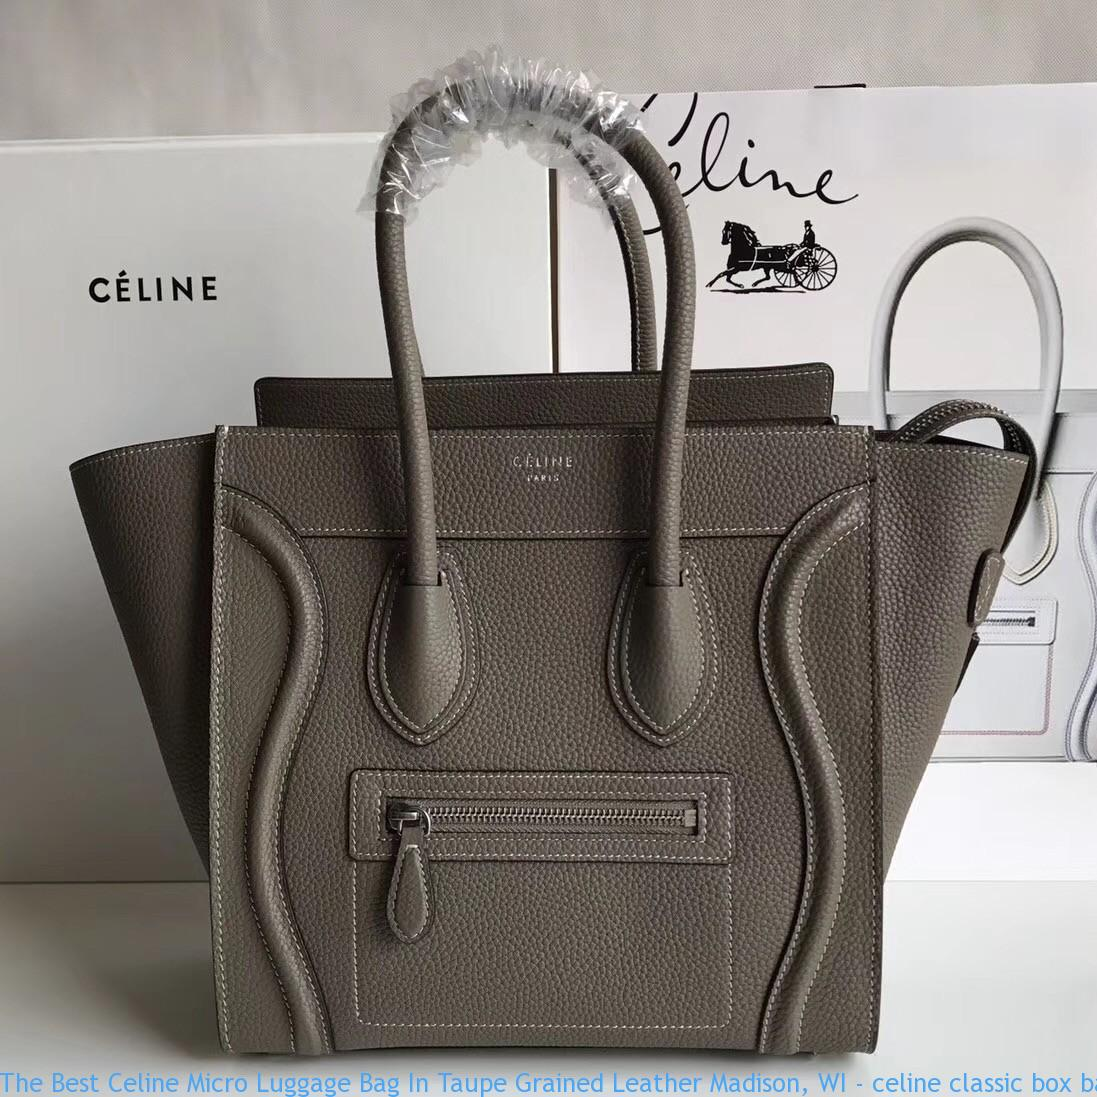 c275cfd02 The Best Celine Micro Luggage Bag In Taupe Grained Leather Madison ...